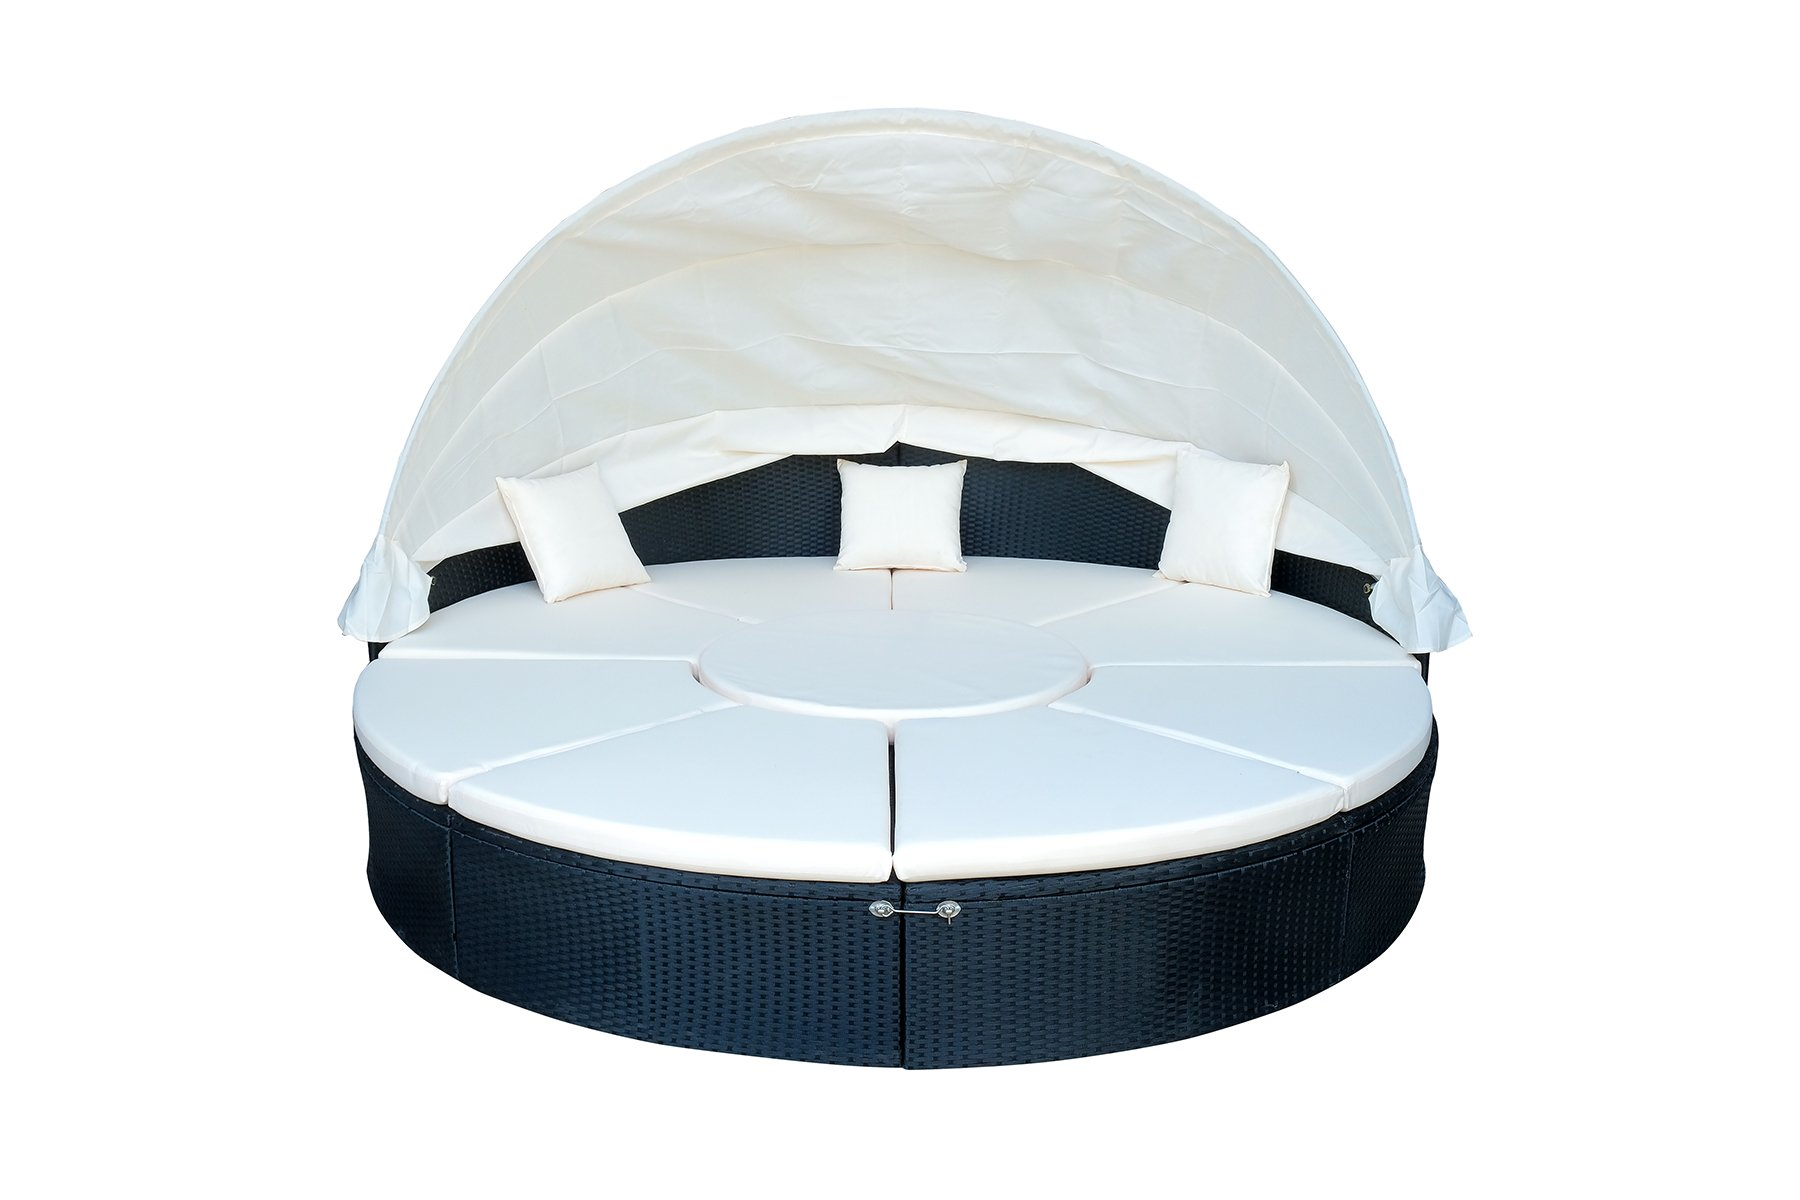 MCombo Patio Round Daybed Wicker Sofa Outdoor Retractable Canopy Wicker Rattan Furniture Set Cushioned Seat 6089-0230